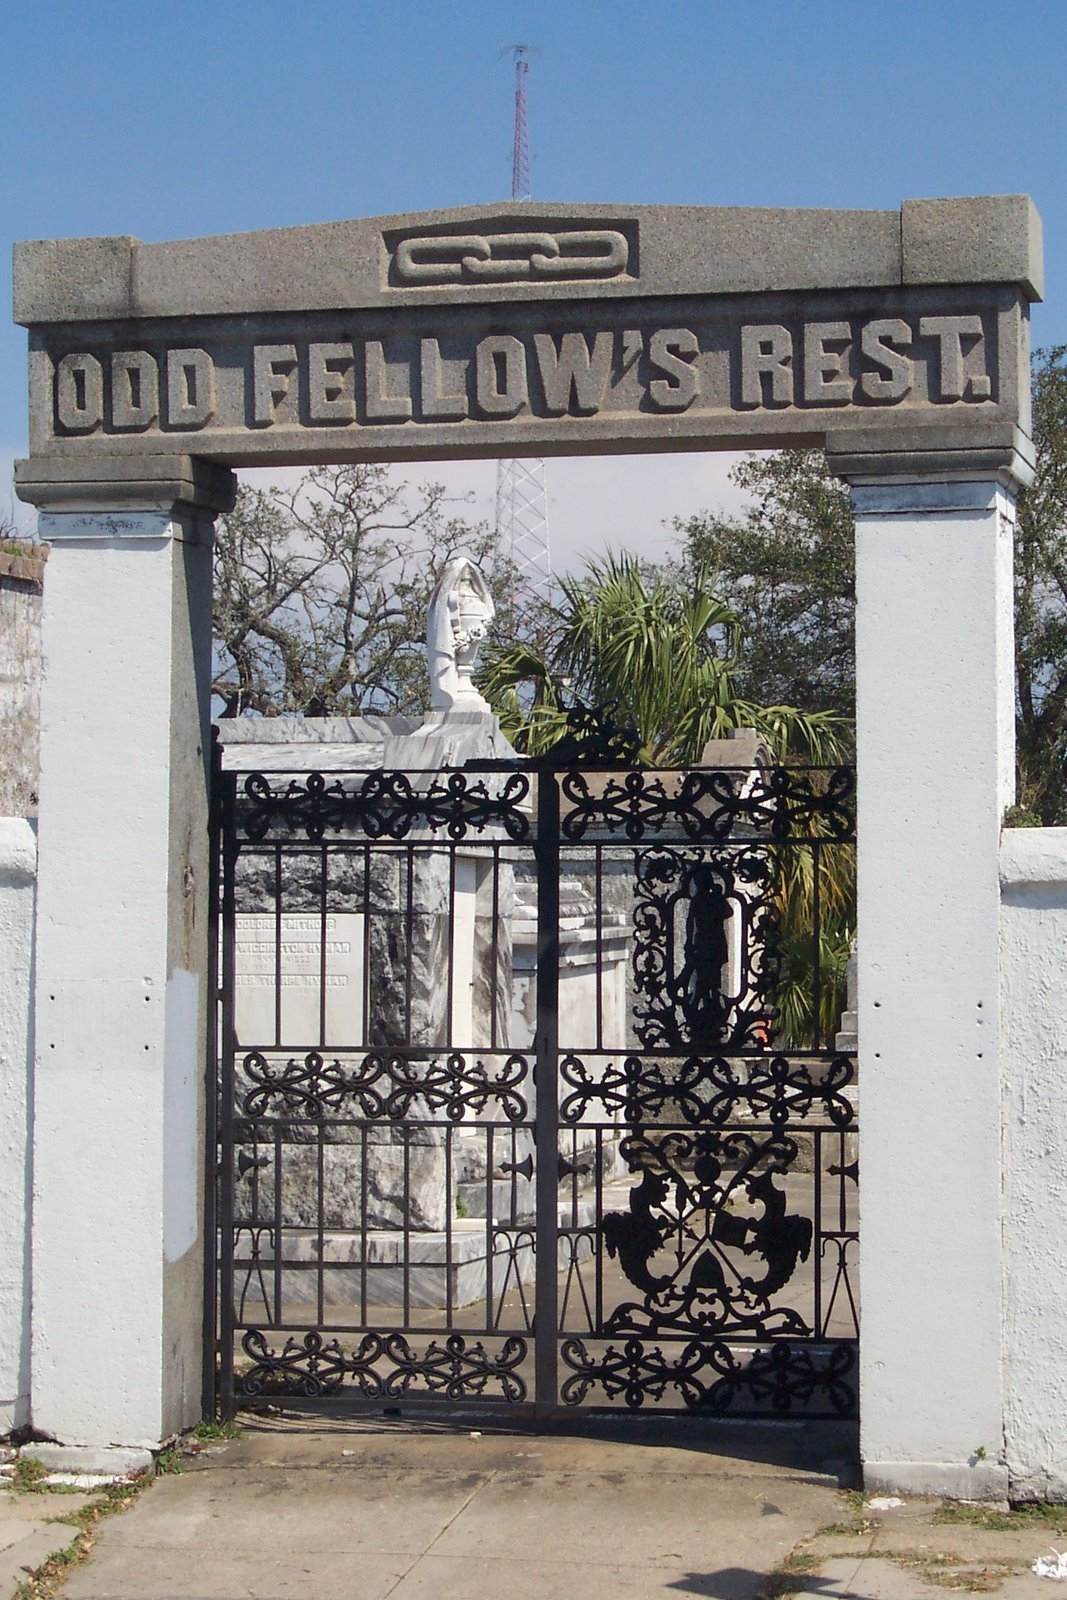 Odd Fellows Rest-Jazz Funerals